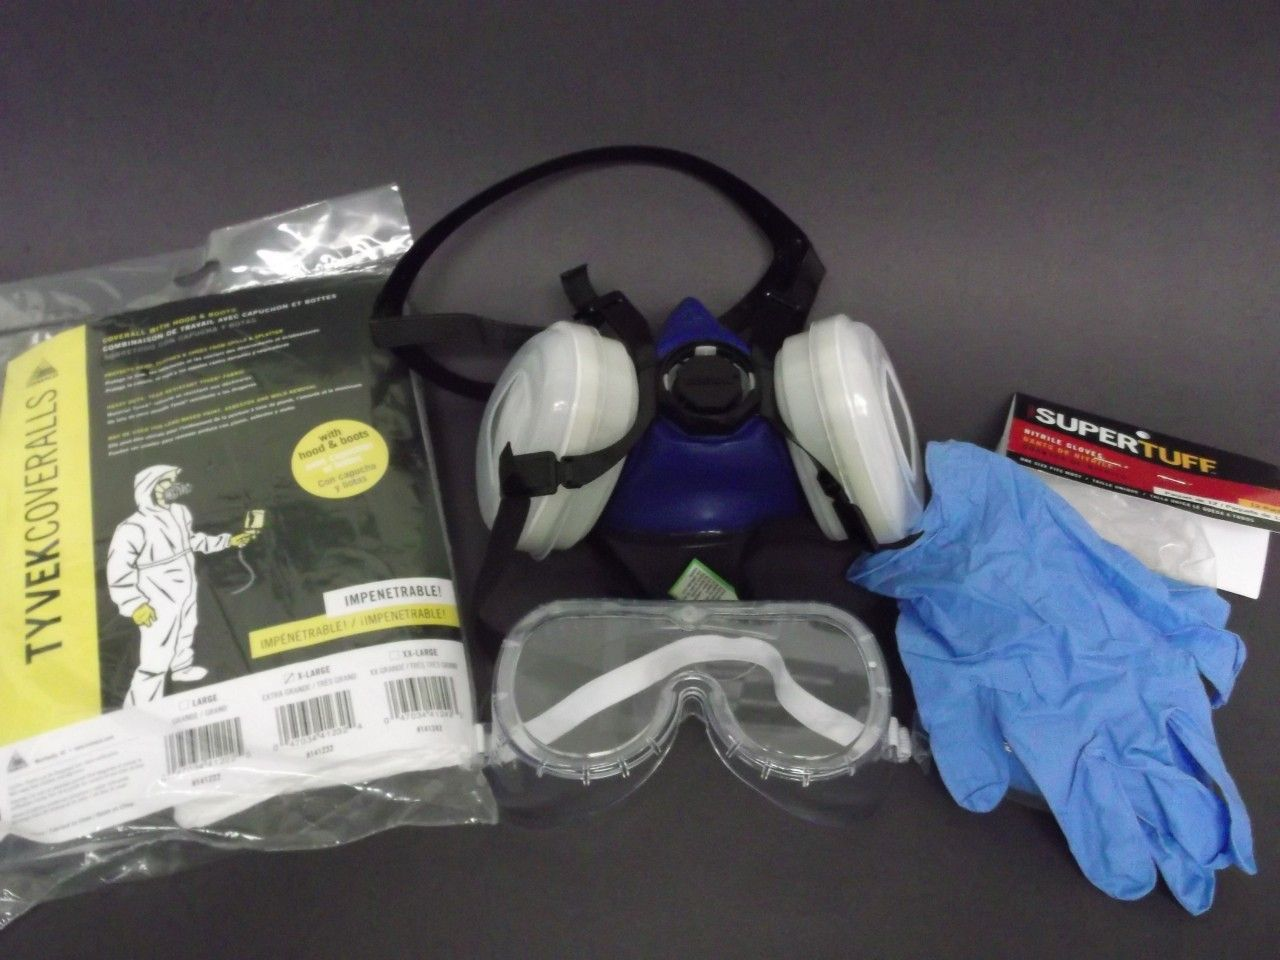 A Warehouse Full! Spray Foam Personal Protection Kit